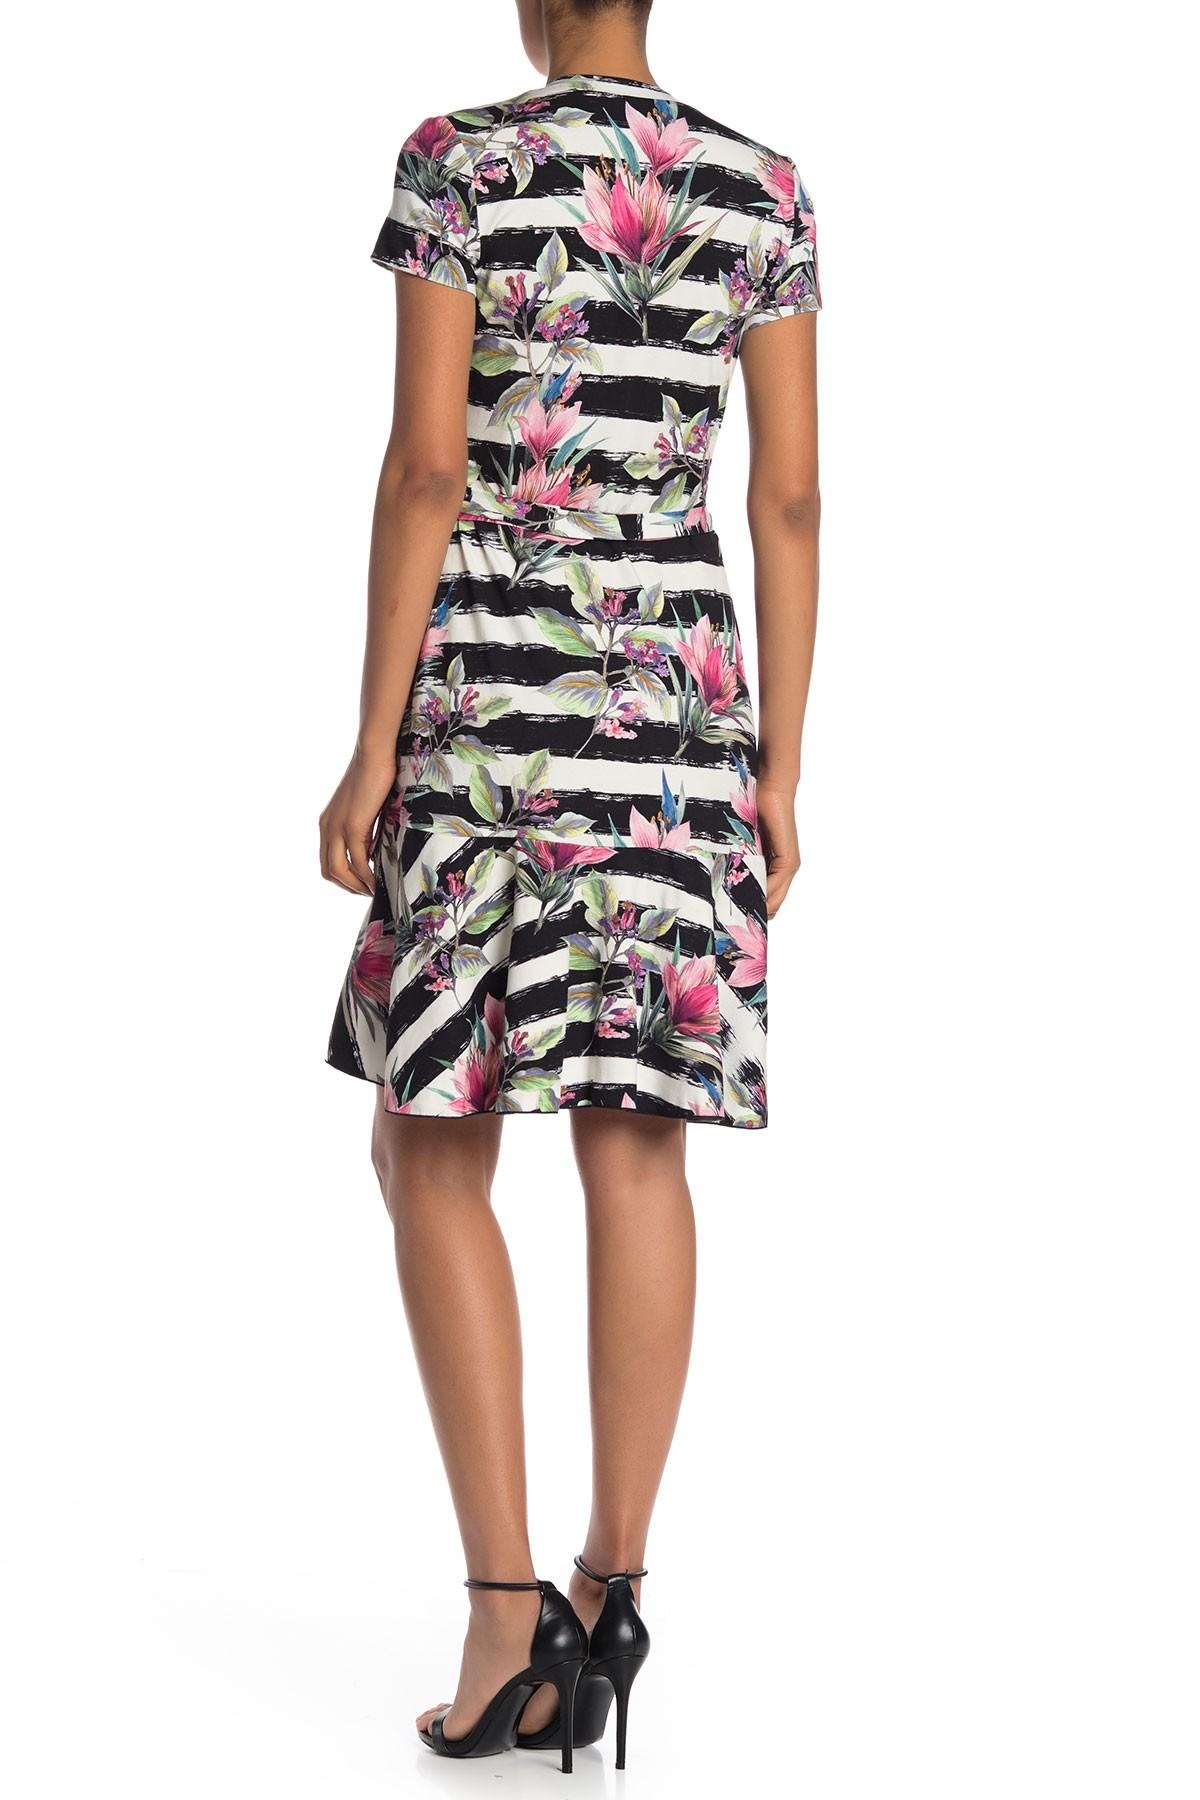 53b8f2bd3ba Nicole Miller Claudette Stripe & Floral Print Wrap Dress in White ...